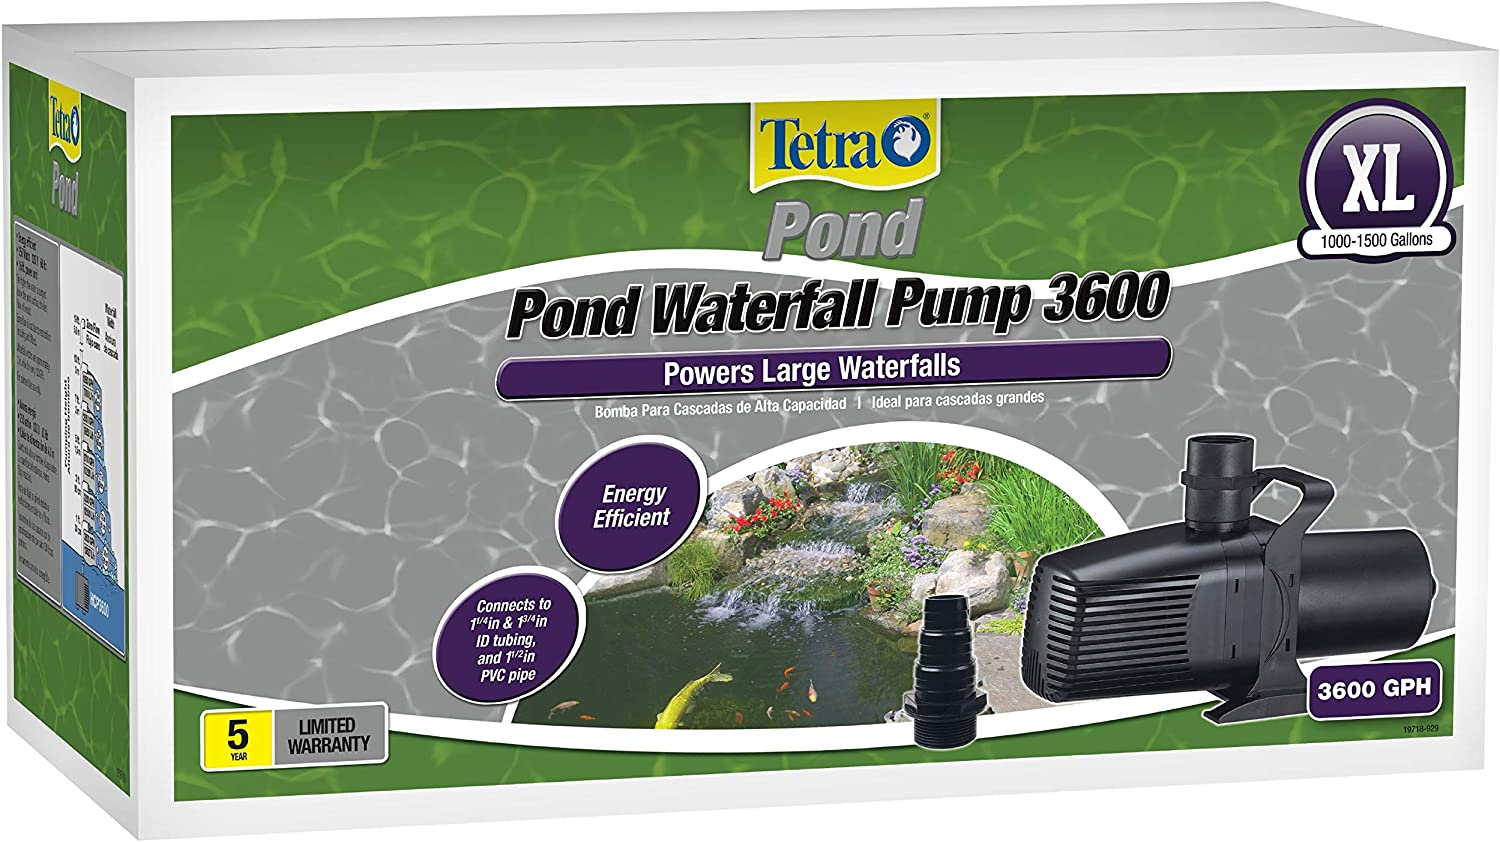 Tetra 14941 pond Waterfall Pump for Ponds, Debris 3600 Gph Handling Pump High Capacity,Ponds Up to 1500 Gallons